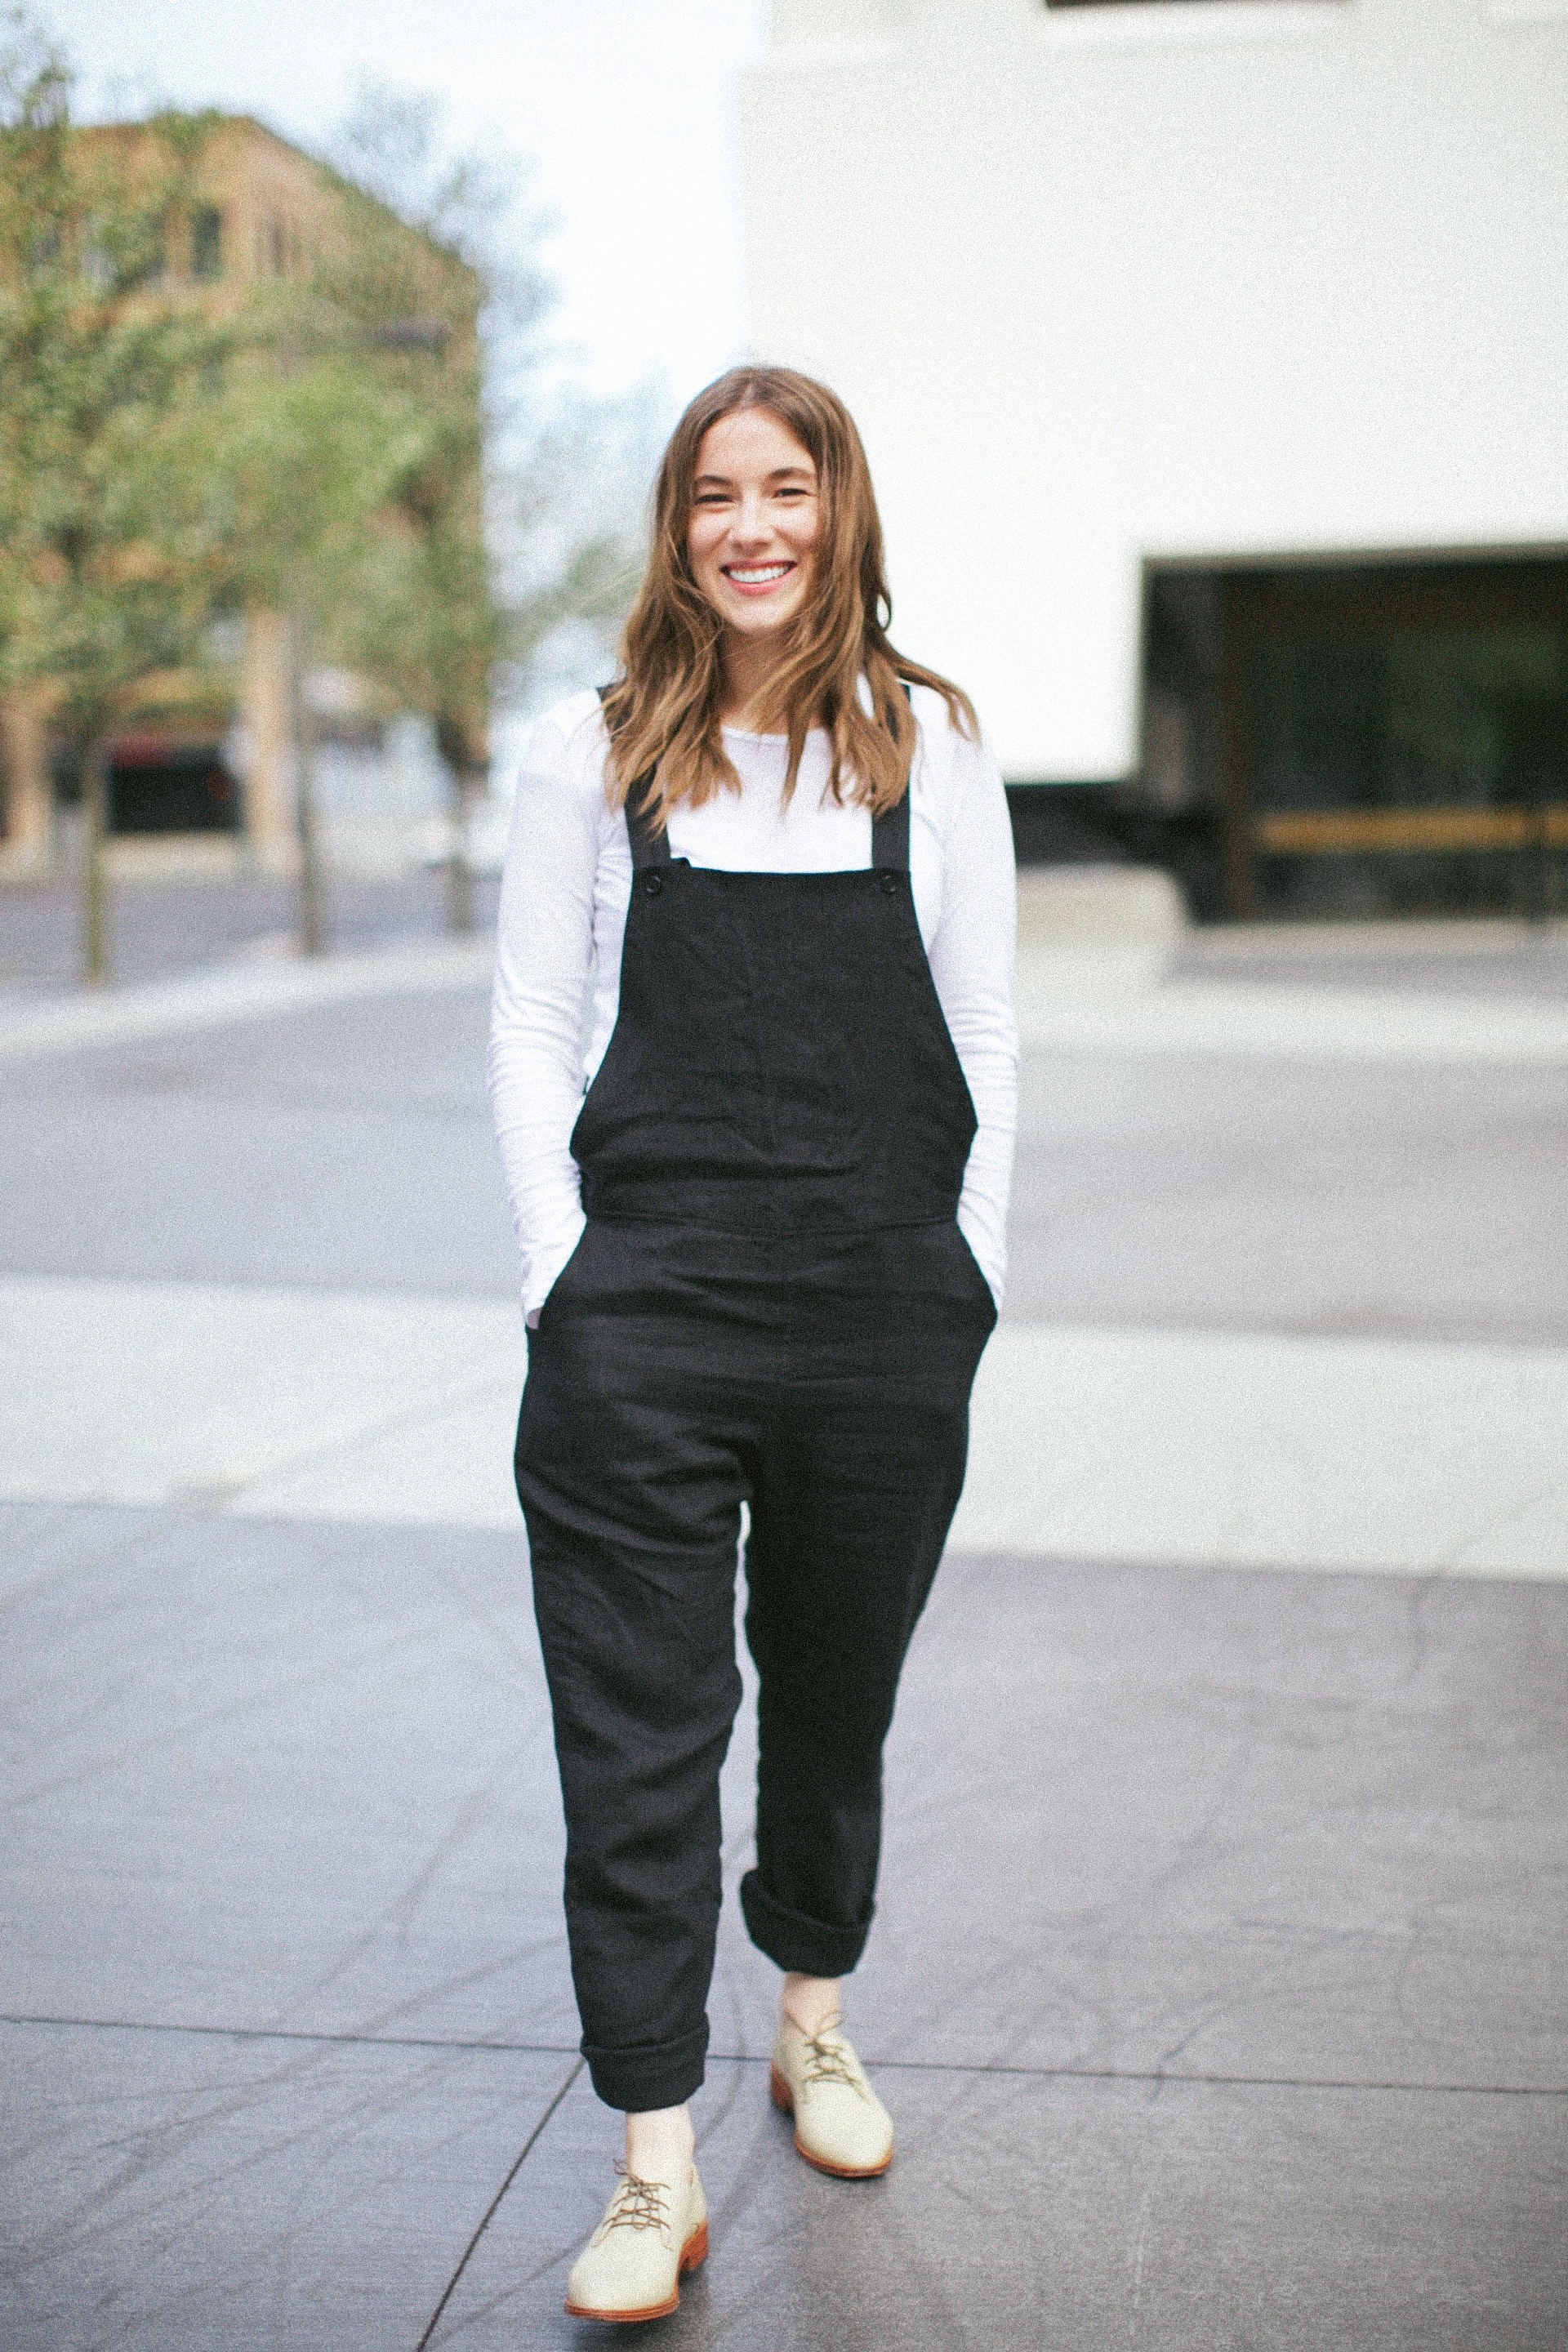 Gina wearing the  Overalls in Black  Linen.